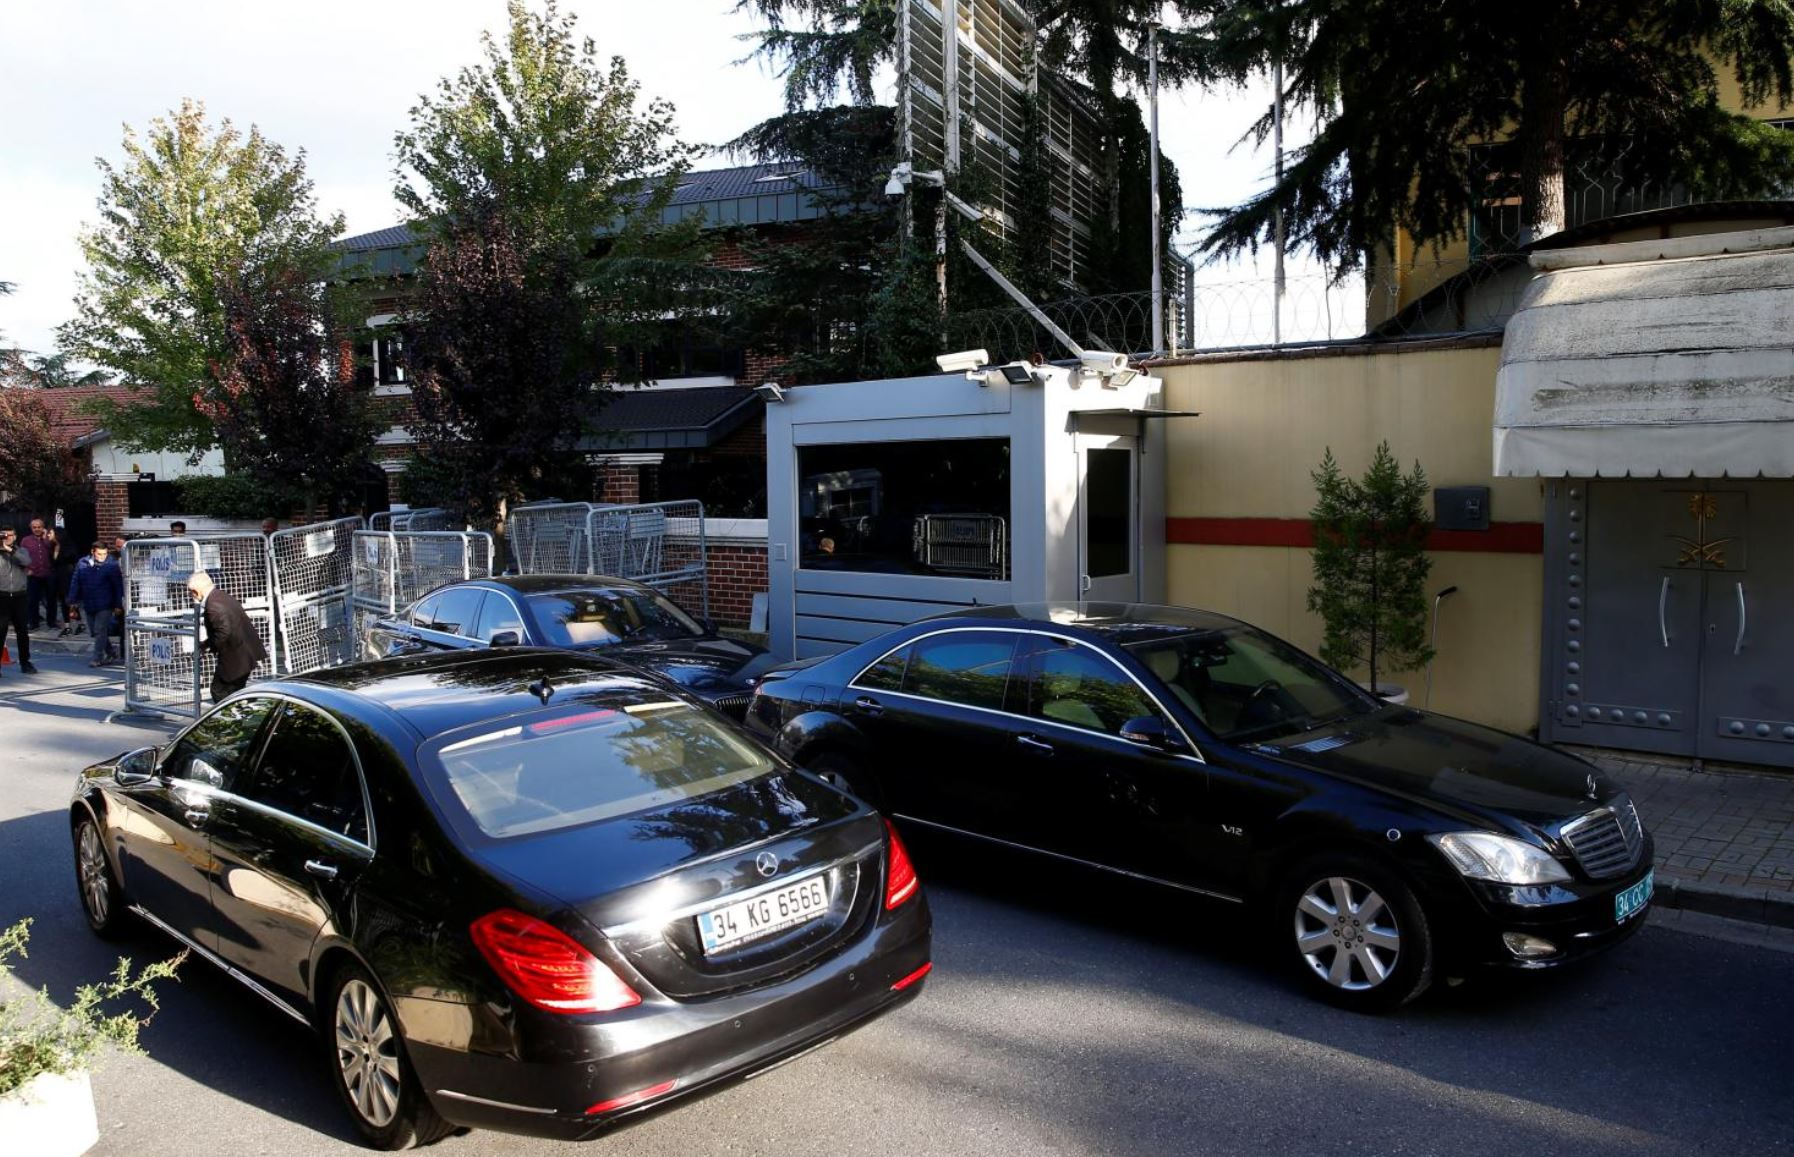 Turkey asks to search Saudi consulate for journalist